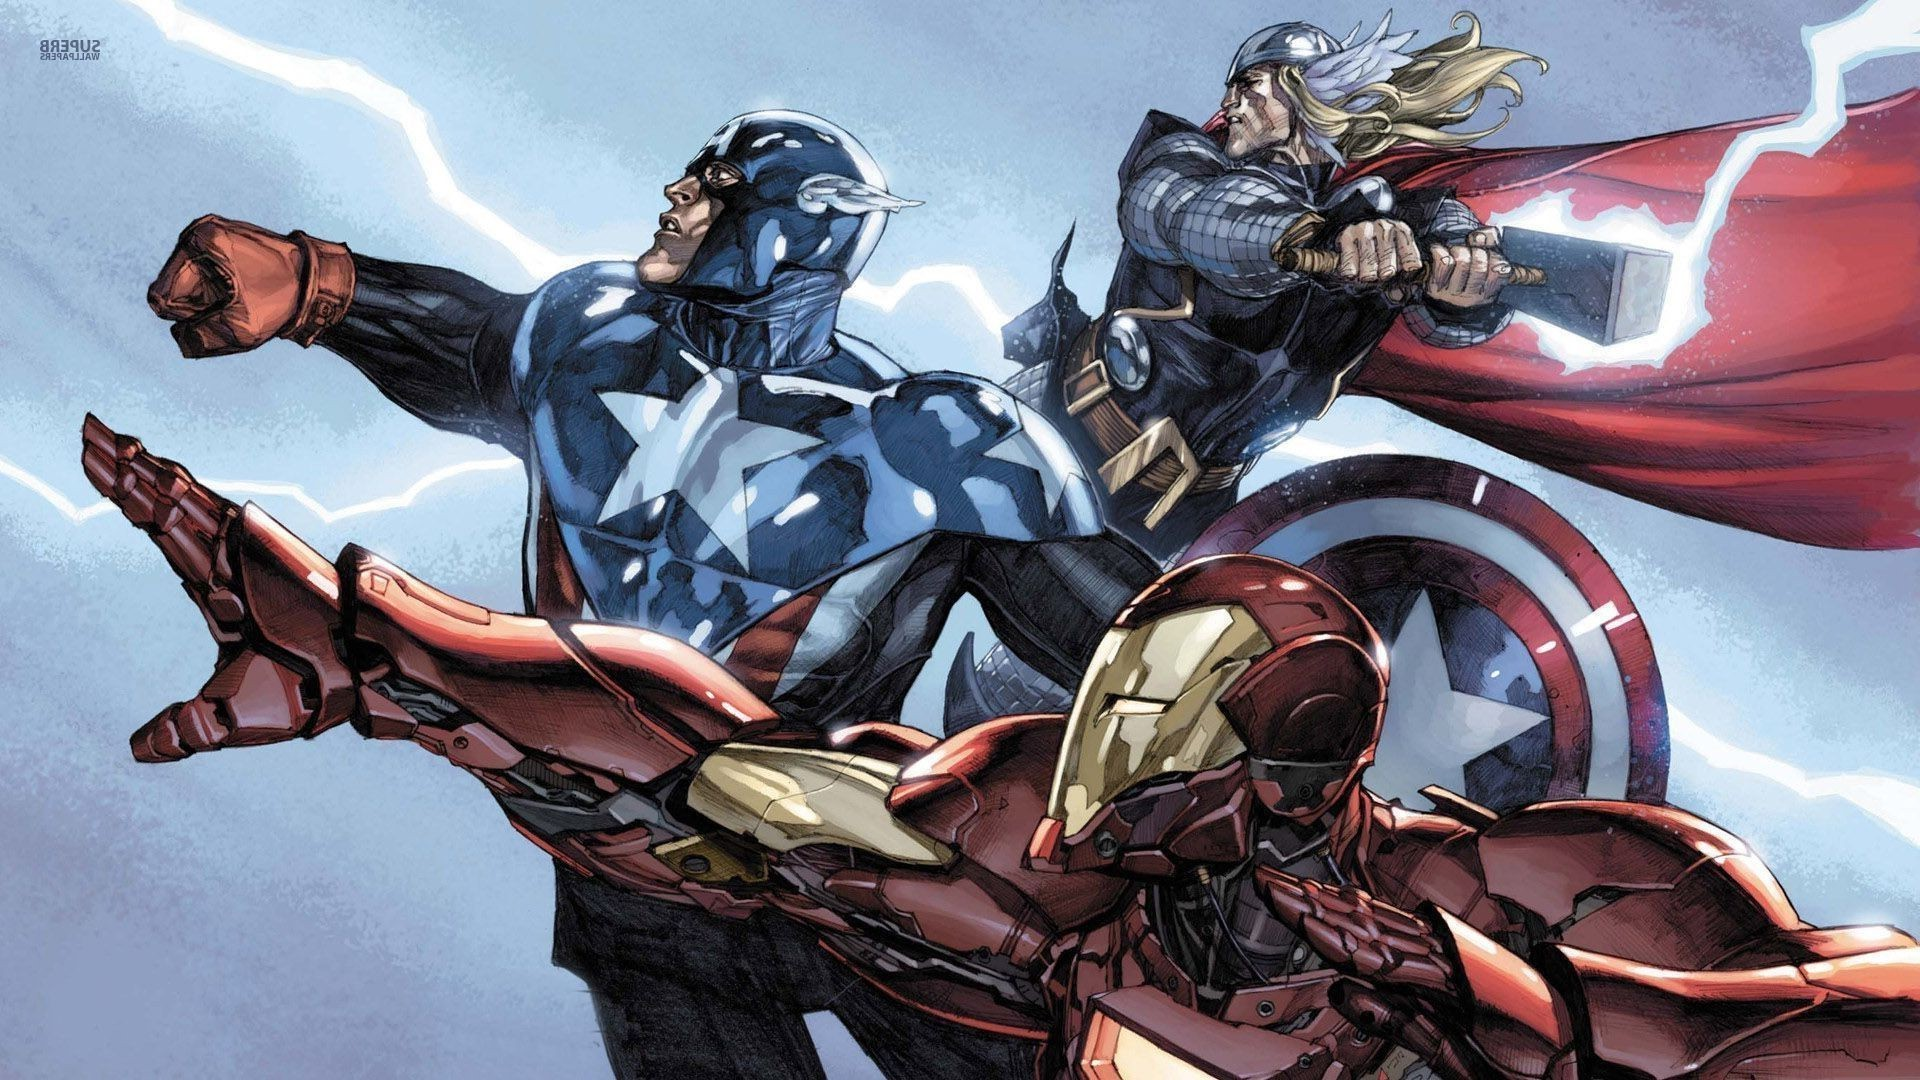 Res: 1920x1080, thor captain america iron man superhero marvel comics wallpaper and  background